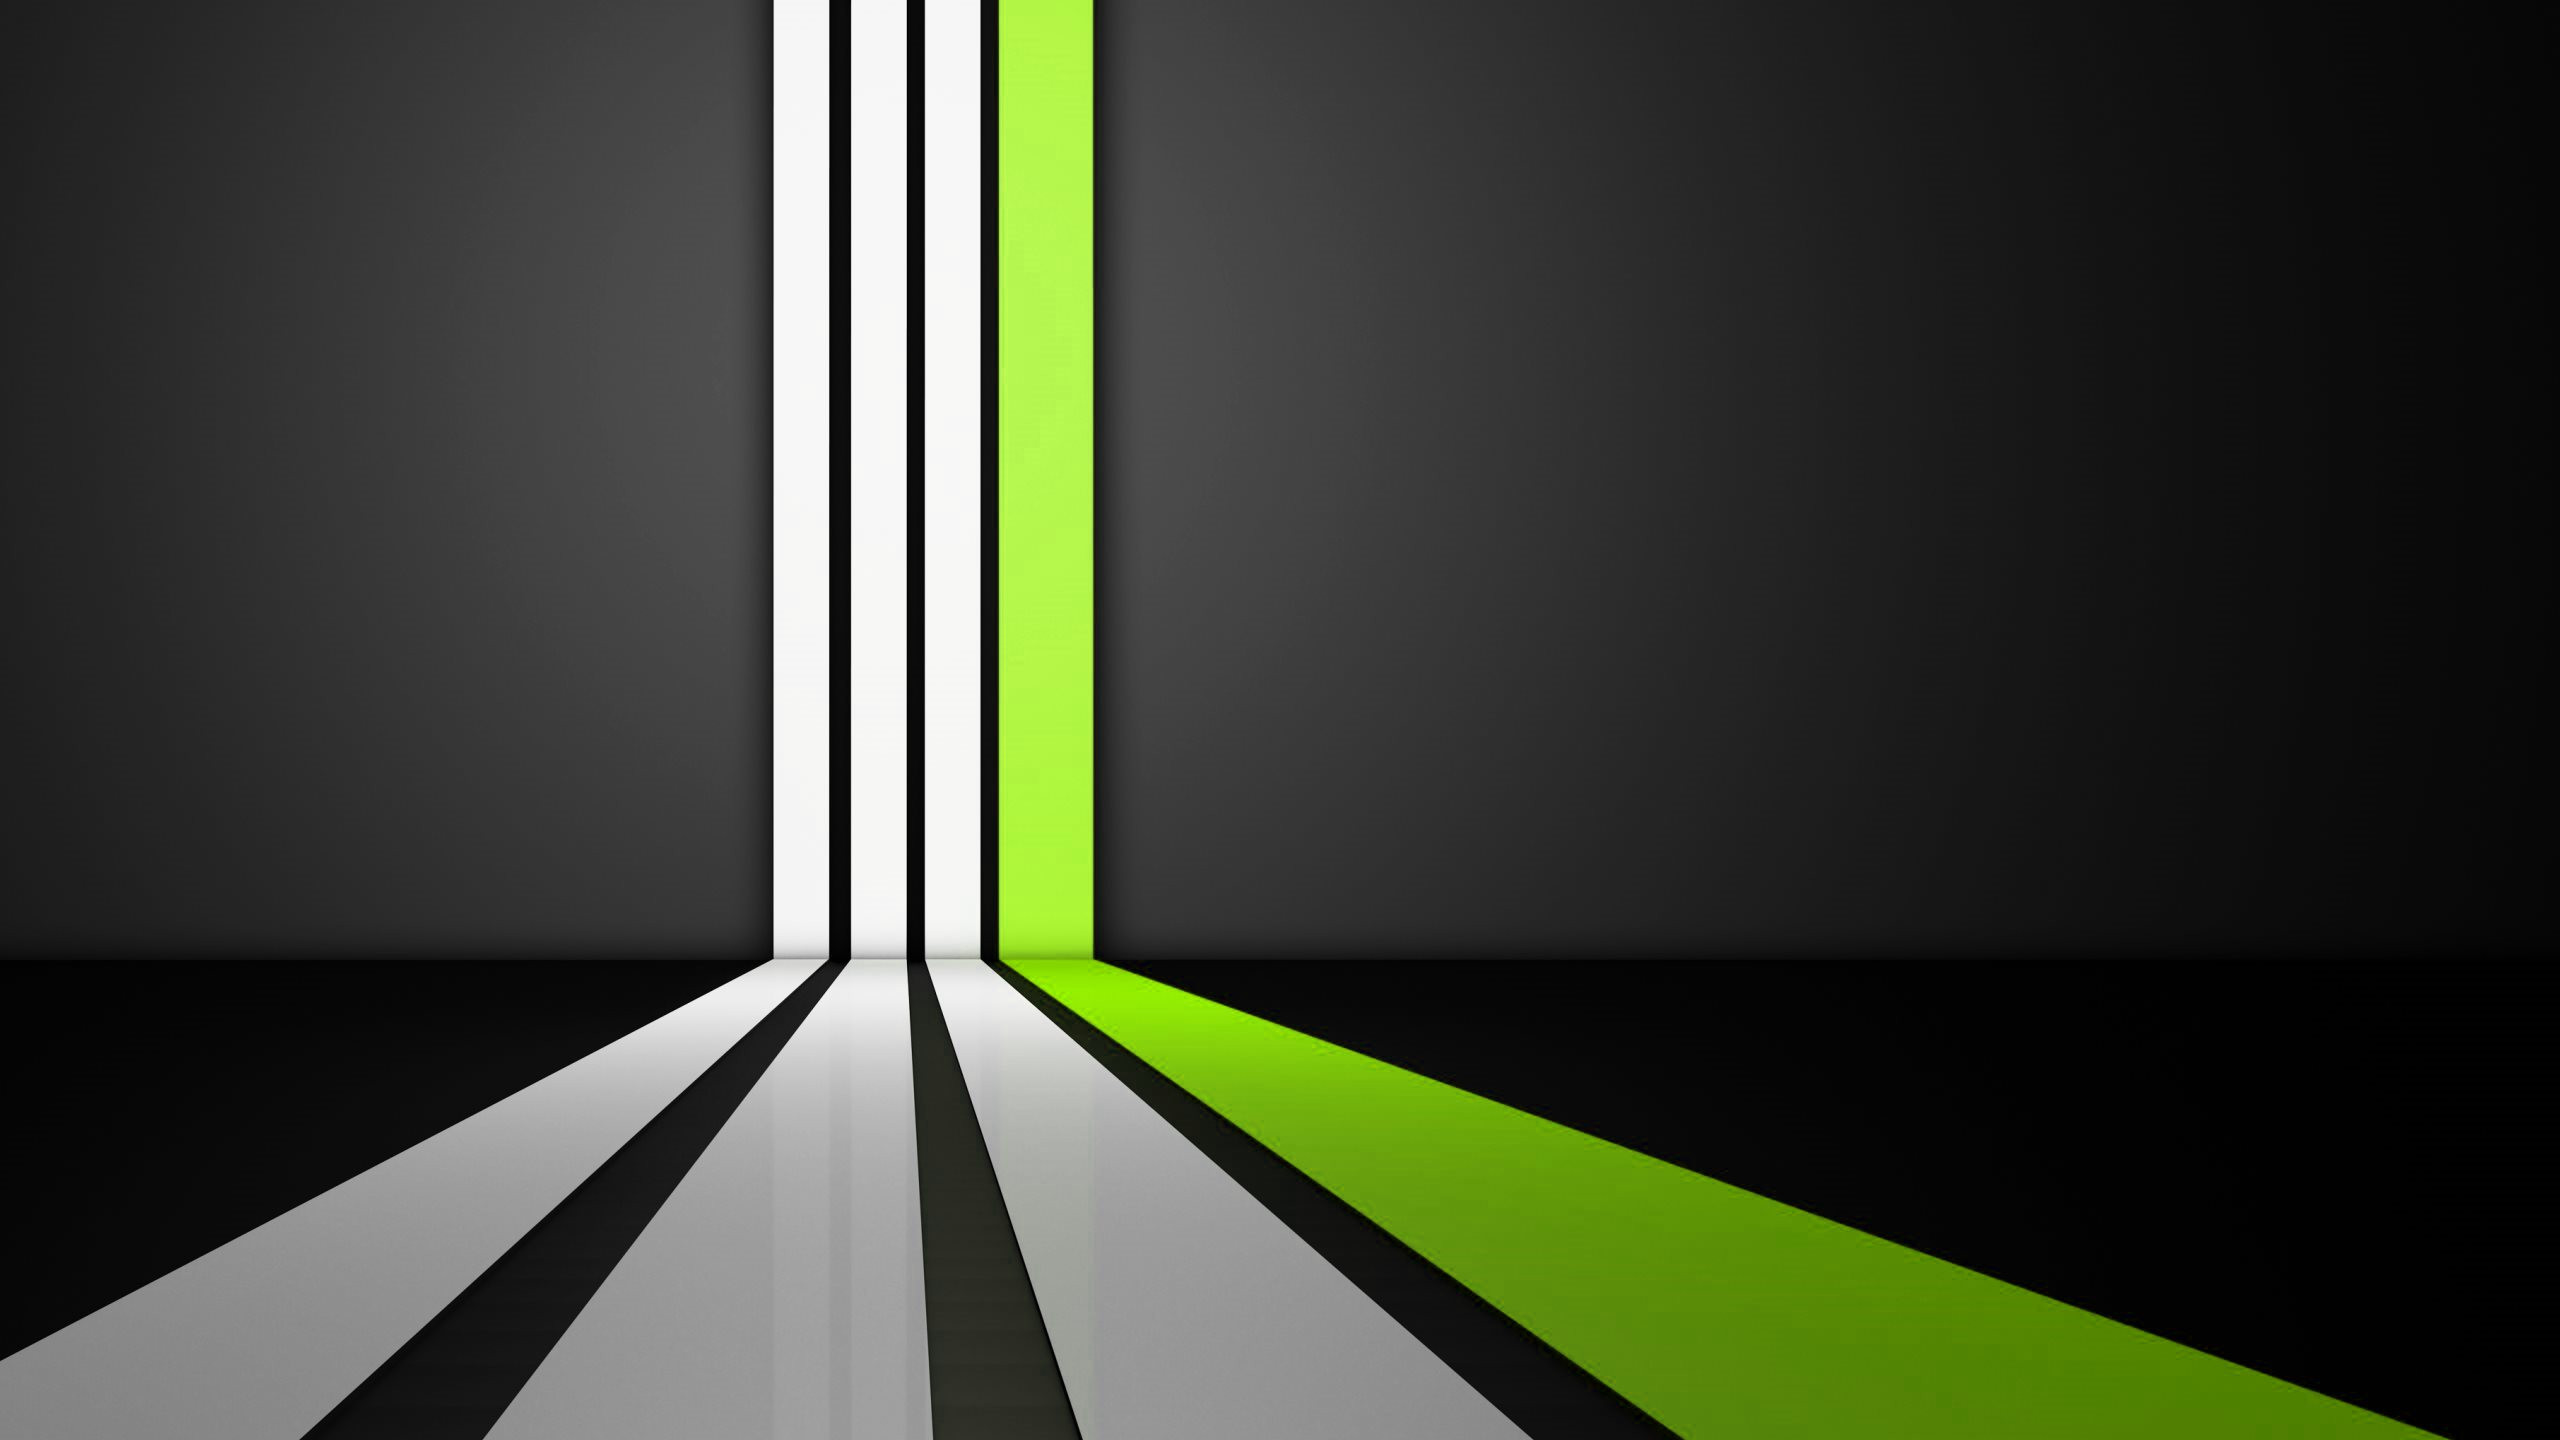 Clean Lines Green wallpaper 2560x1440